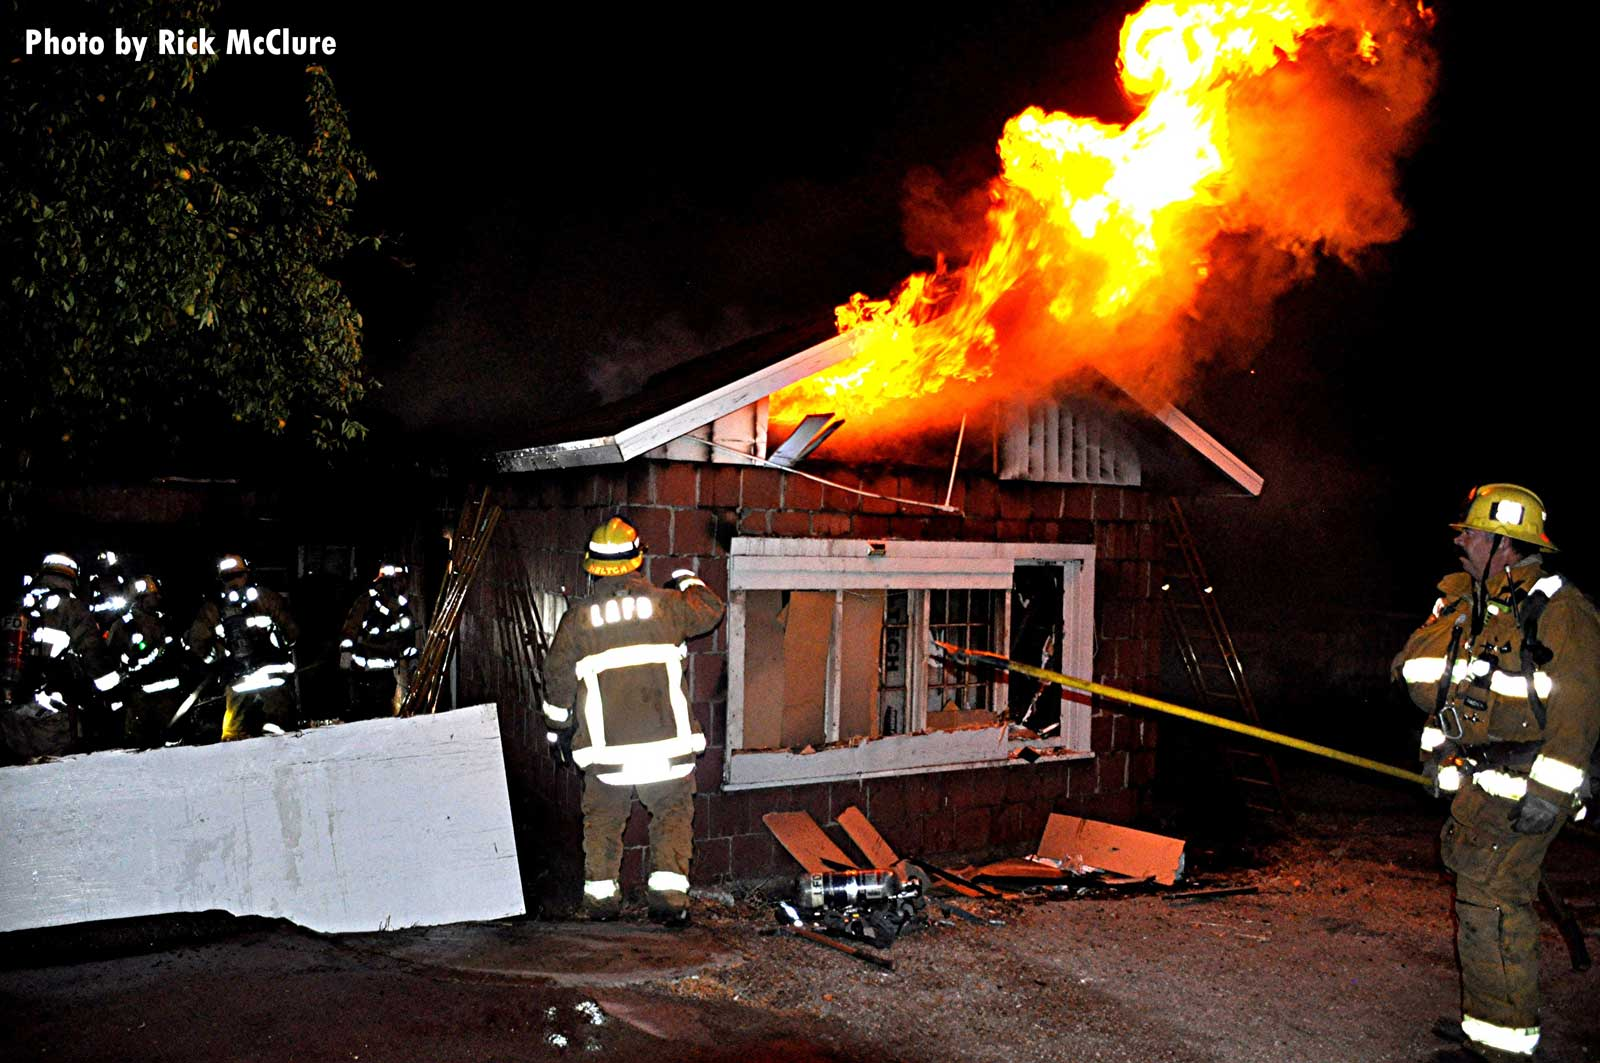 Flames shoot out from under the roof of the fire